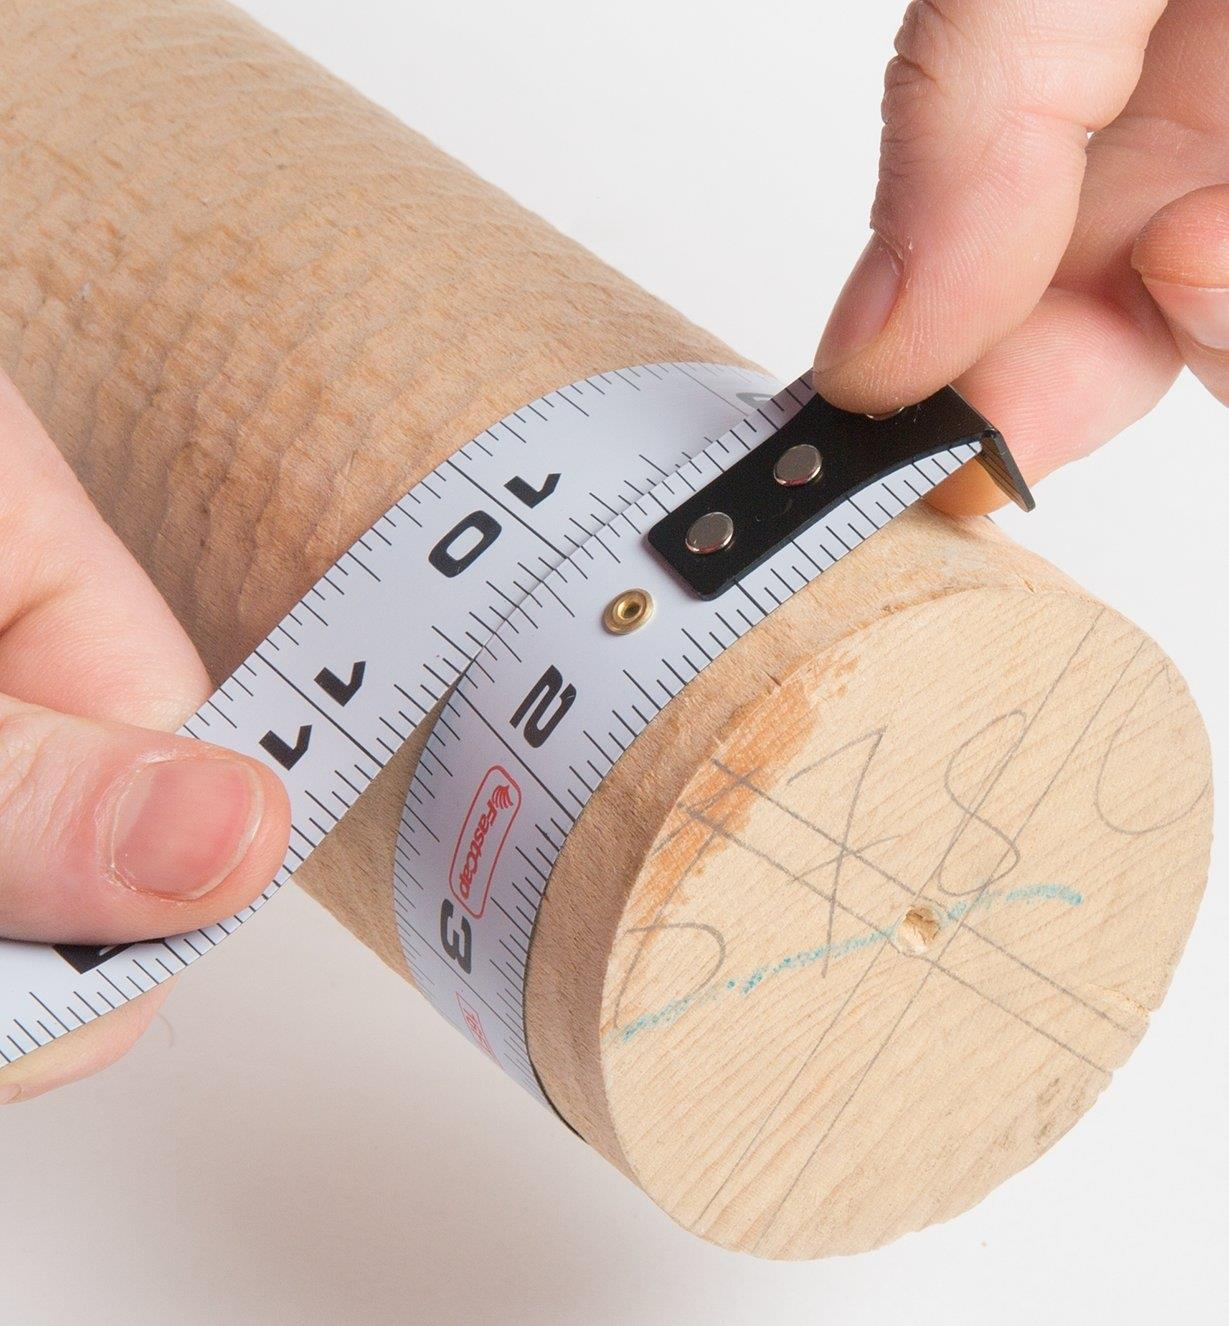 Measuring the circumference of a dowel